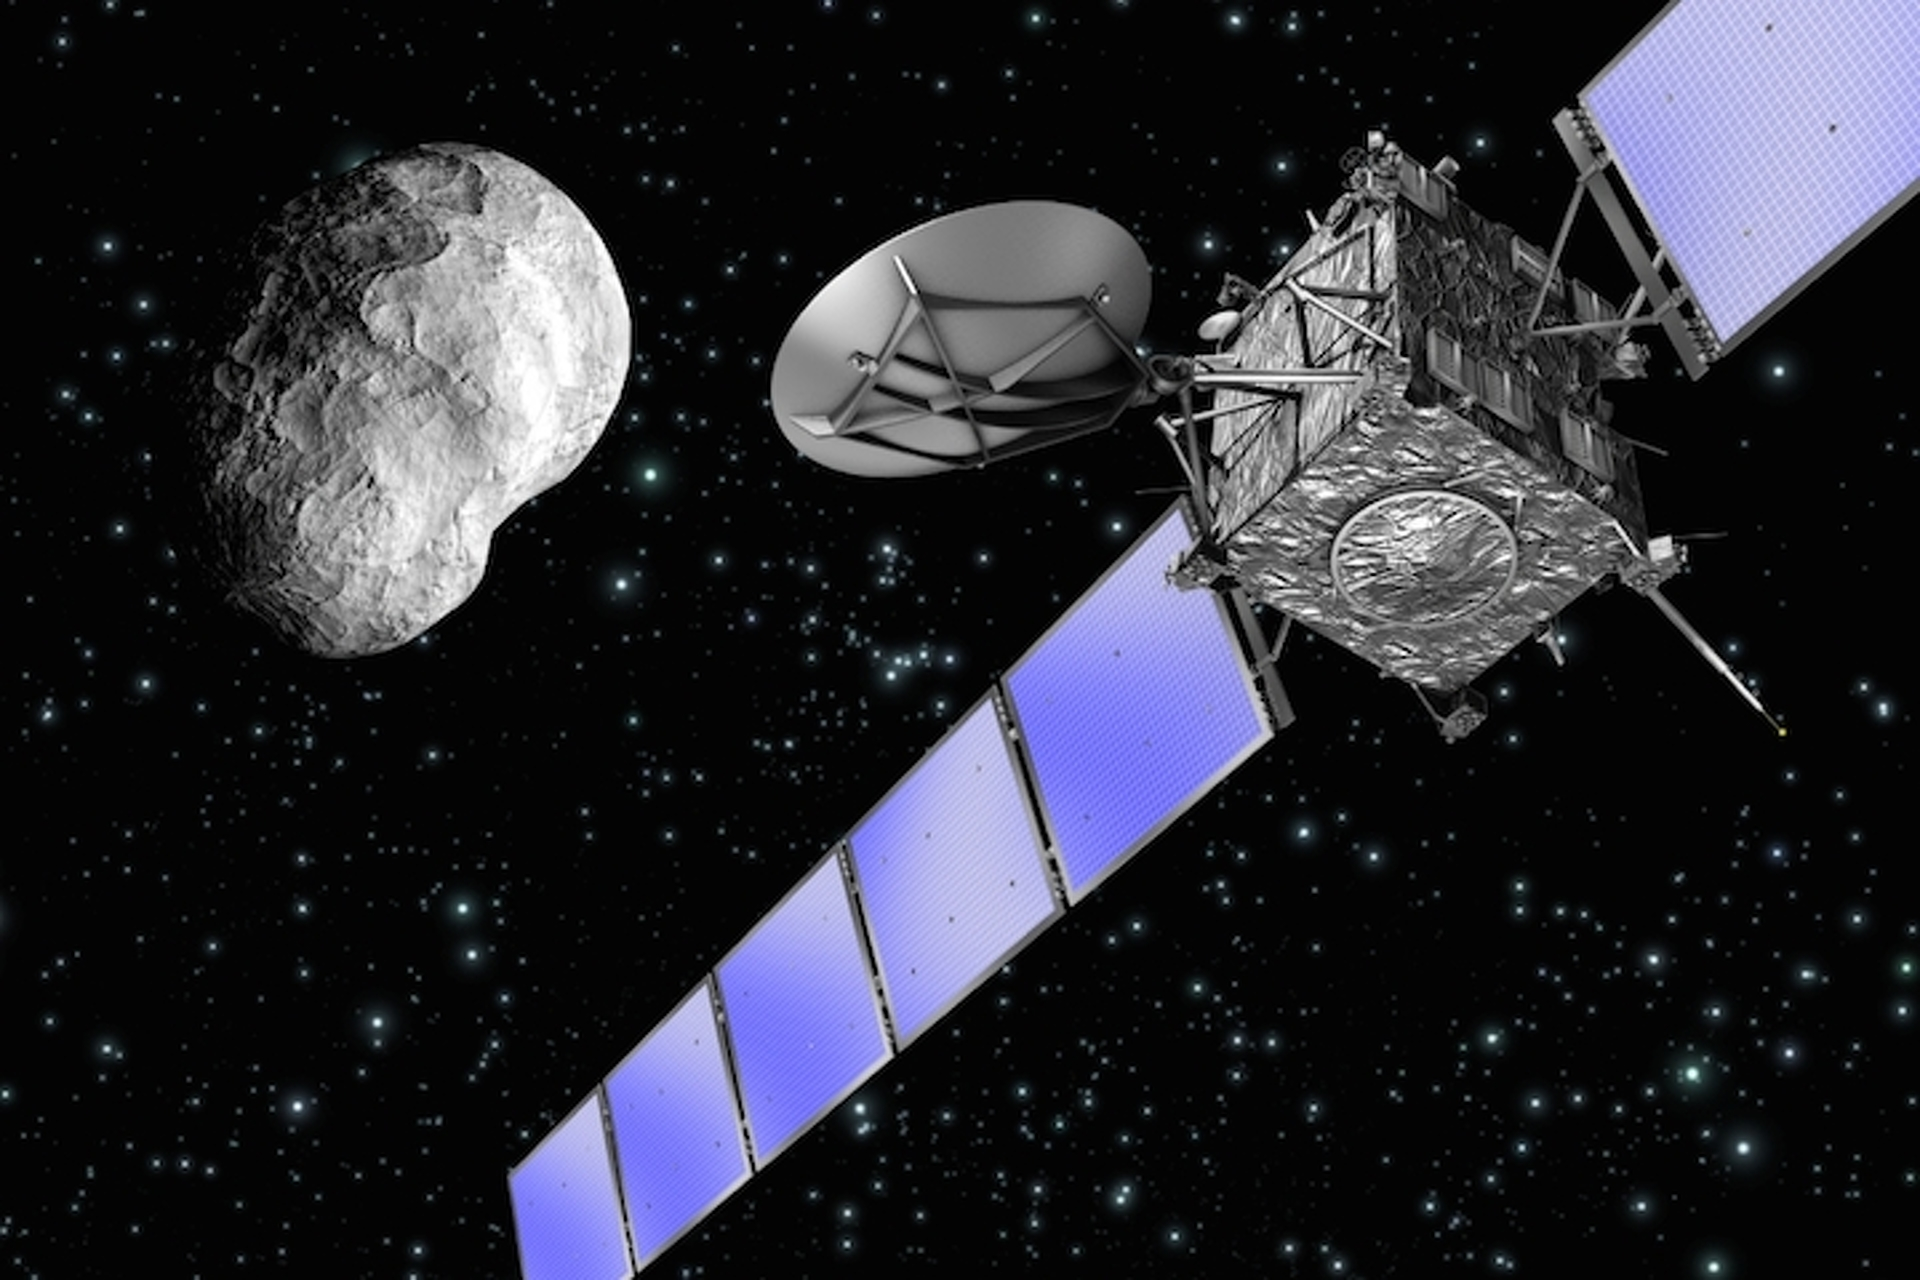 In a Week, Humanity Will Land on Comet For First Time